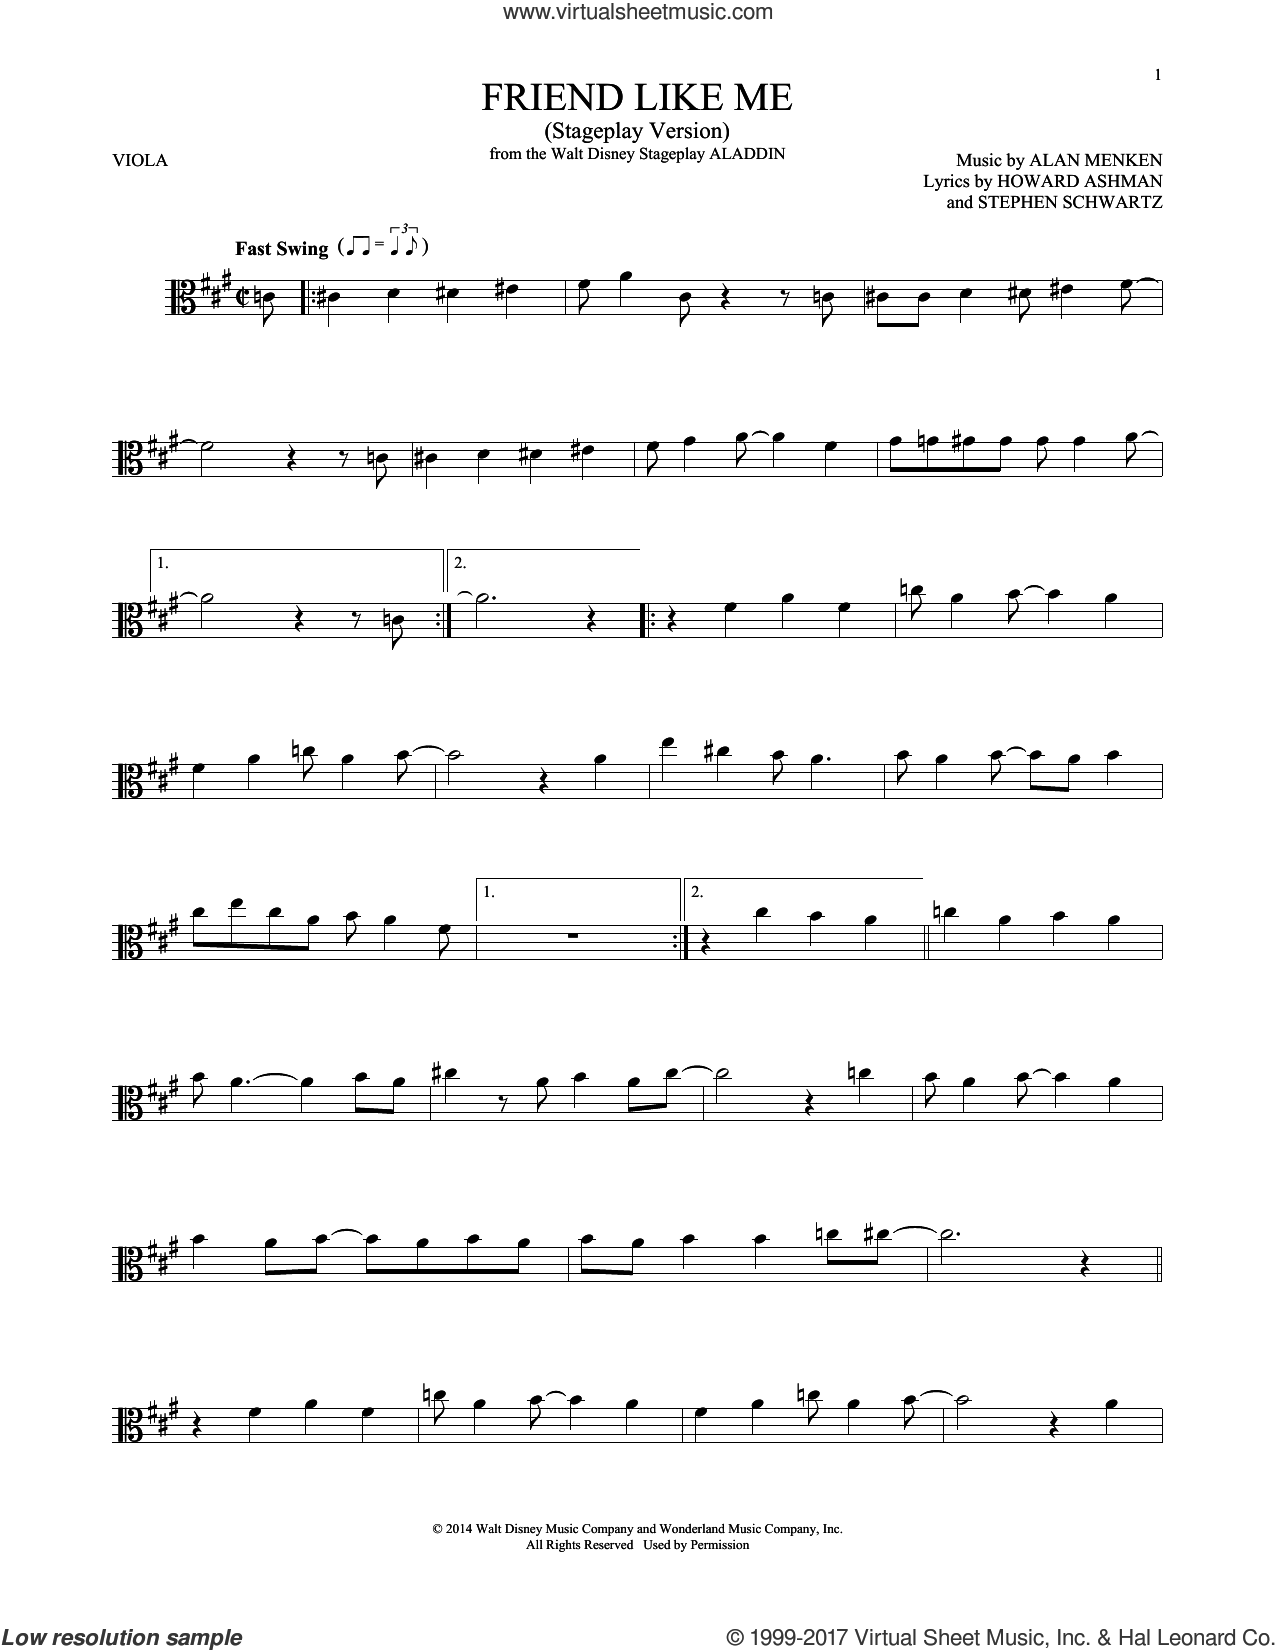 Friend Like Me (from Aladdin) (Stageplay Version) sheet music for viola solo by Alan Menken, Howard Ashman and Stephen Schwartz, intermediate skill level